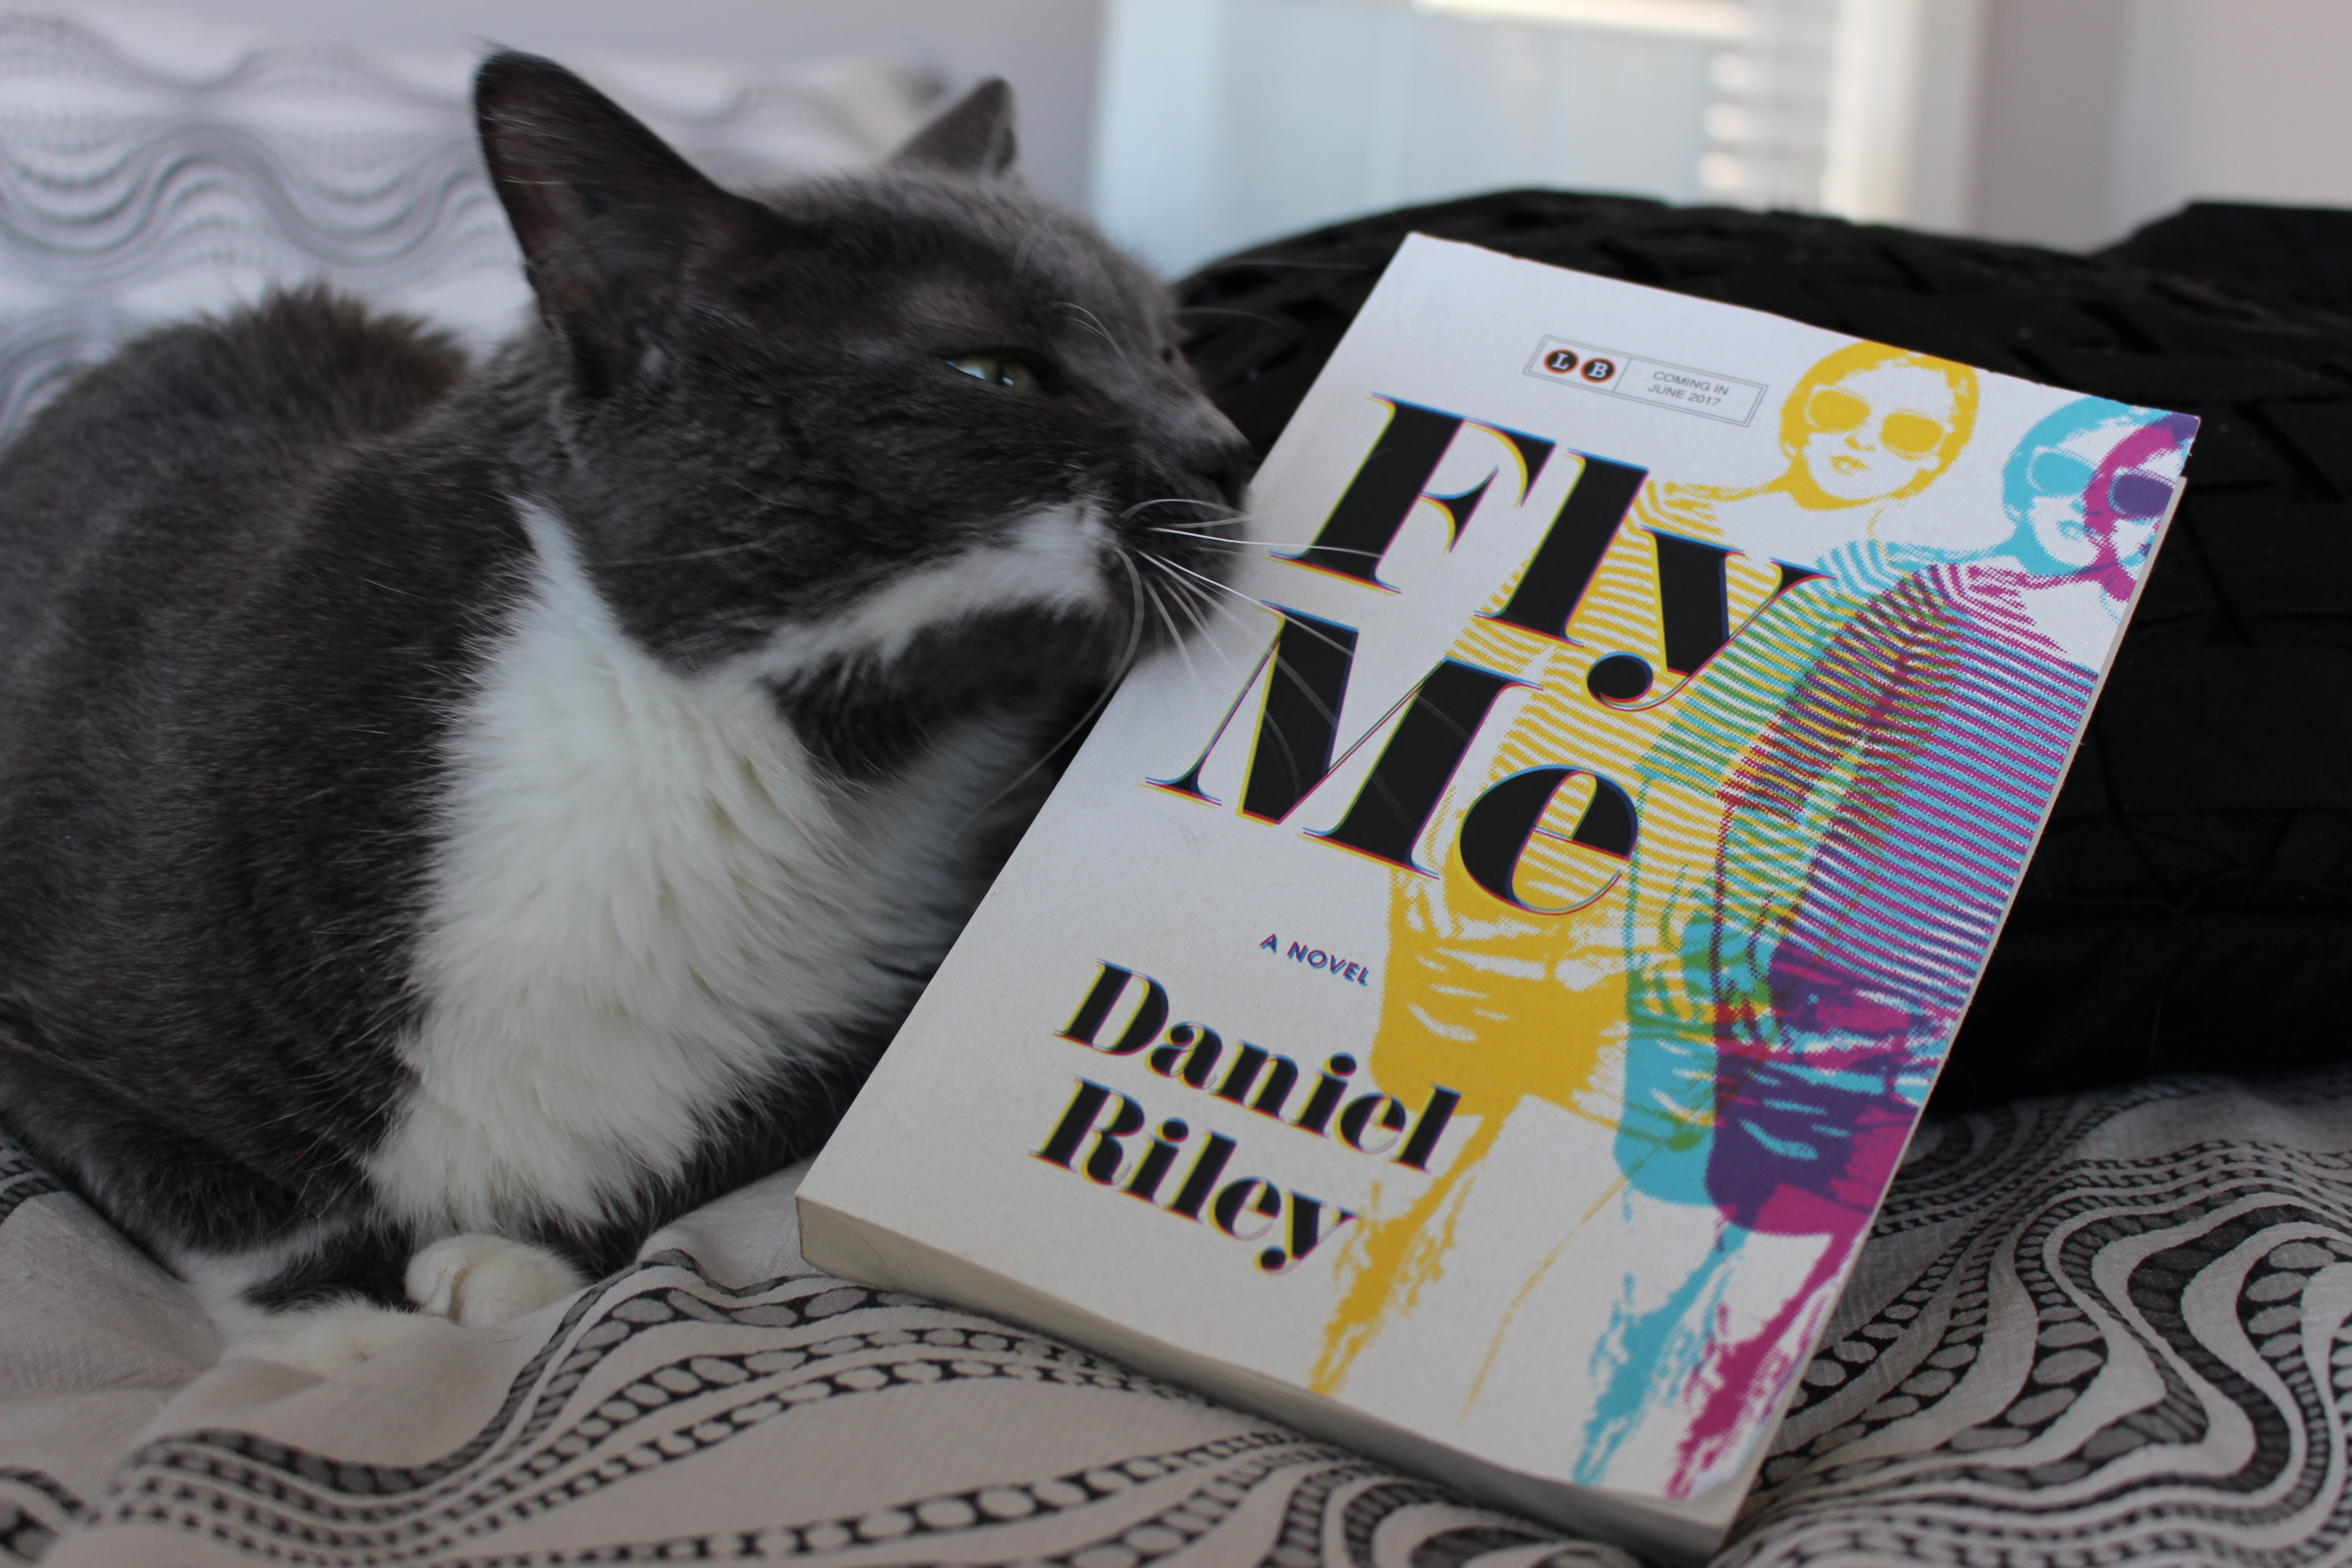 Book Review: Fly Me by Daniel Riley